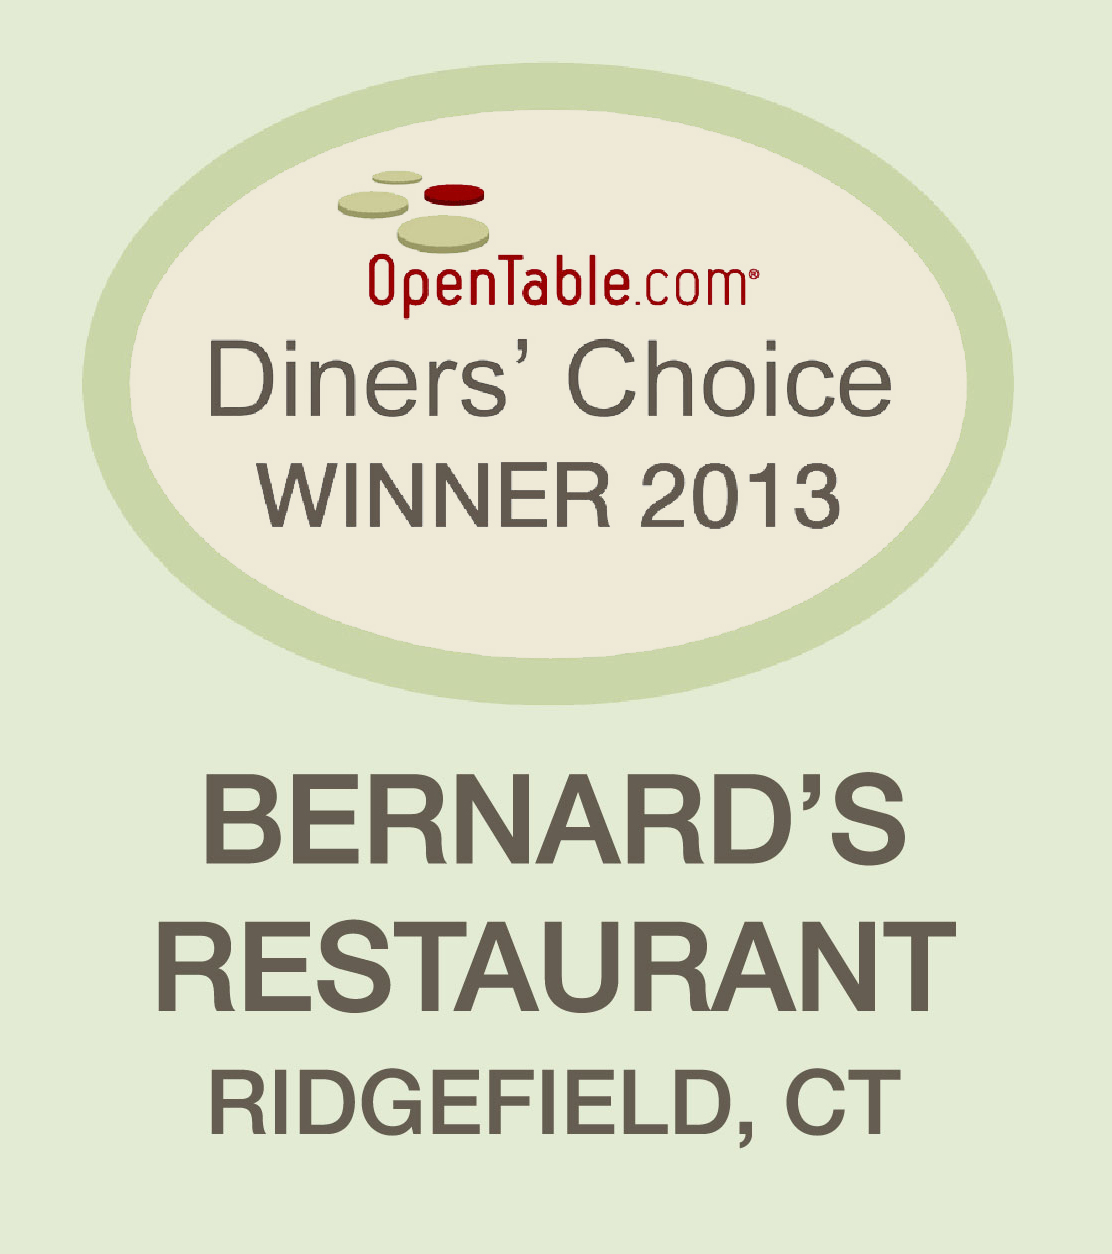 Bernards-OPENTABLE-1.jpg